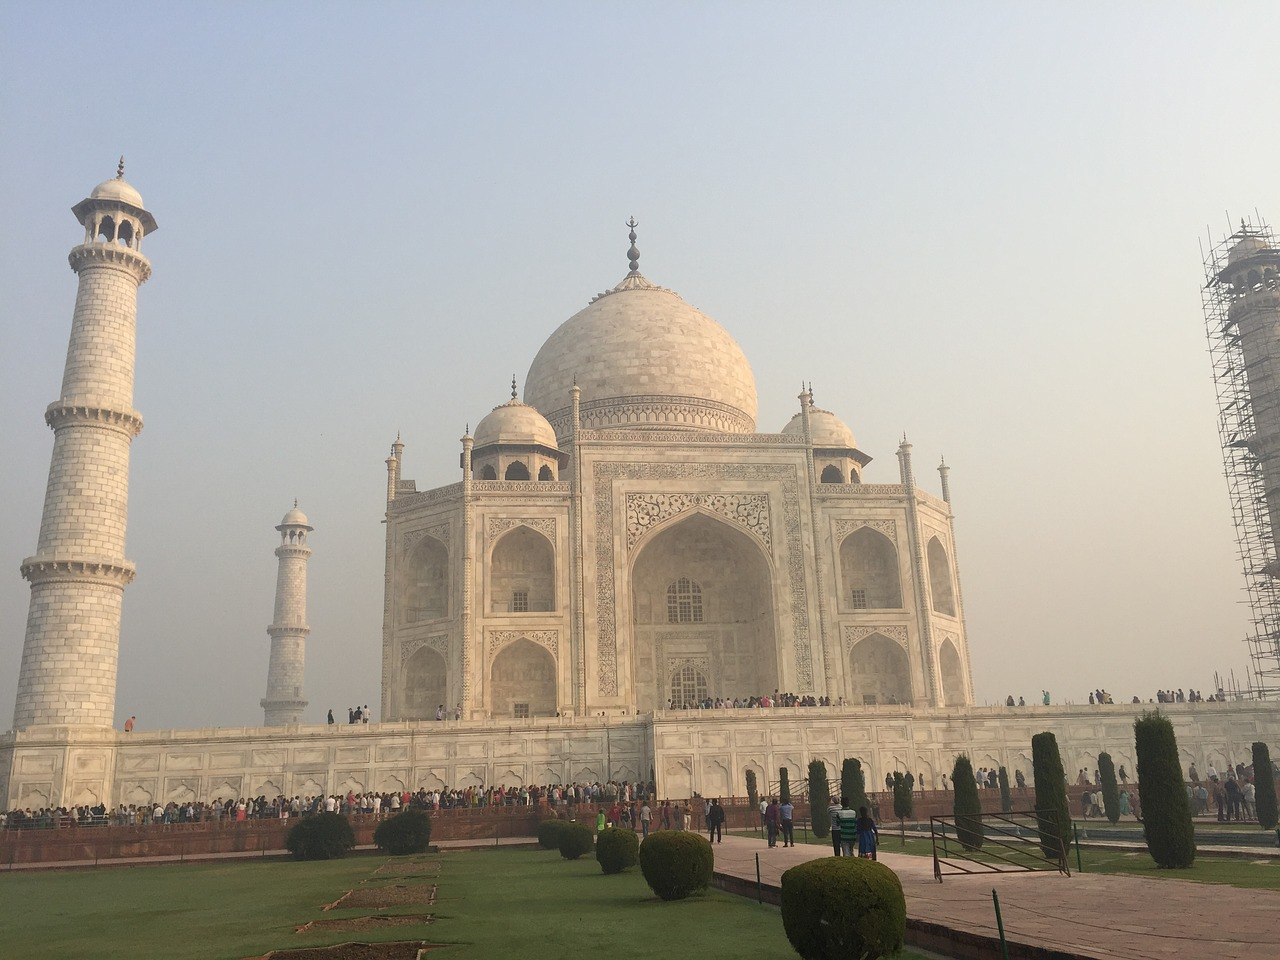 taj mahal,india,asia,taj,mahal,agra,architecture,monument,mausoleum,minaret,marble,tower,vacation,free pictures, free photos, free images, royalty free, free illustrations, public domain